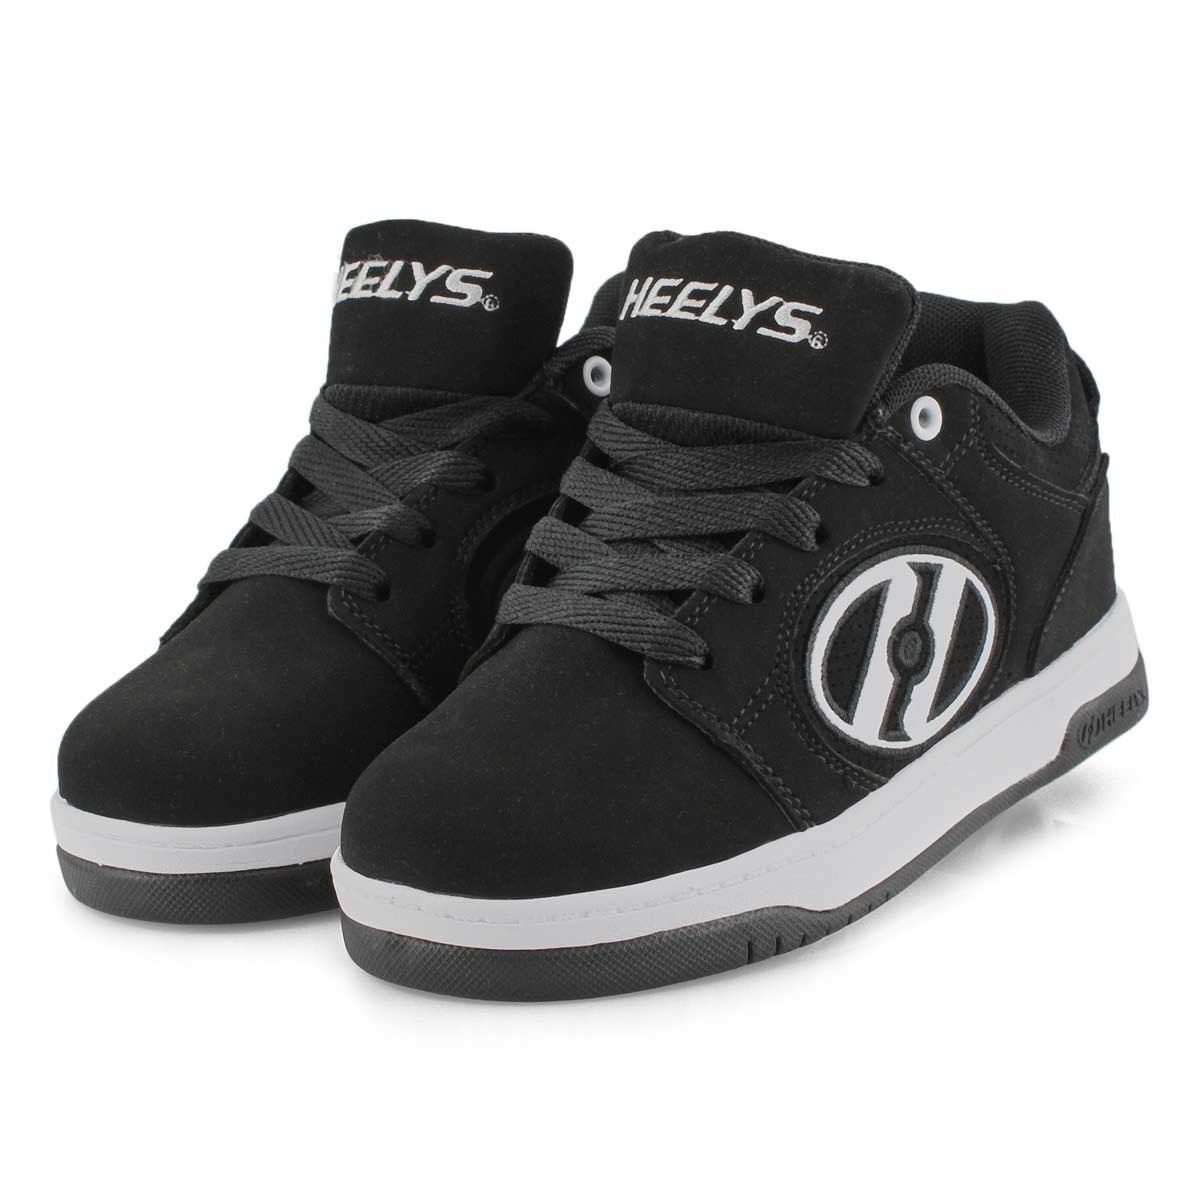 Bys Voyager blk/wht laceup skate snkr